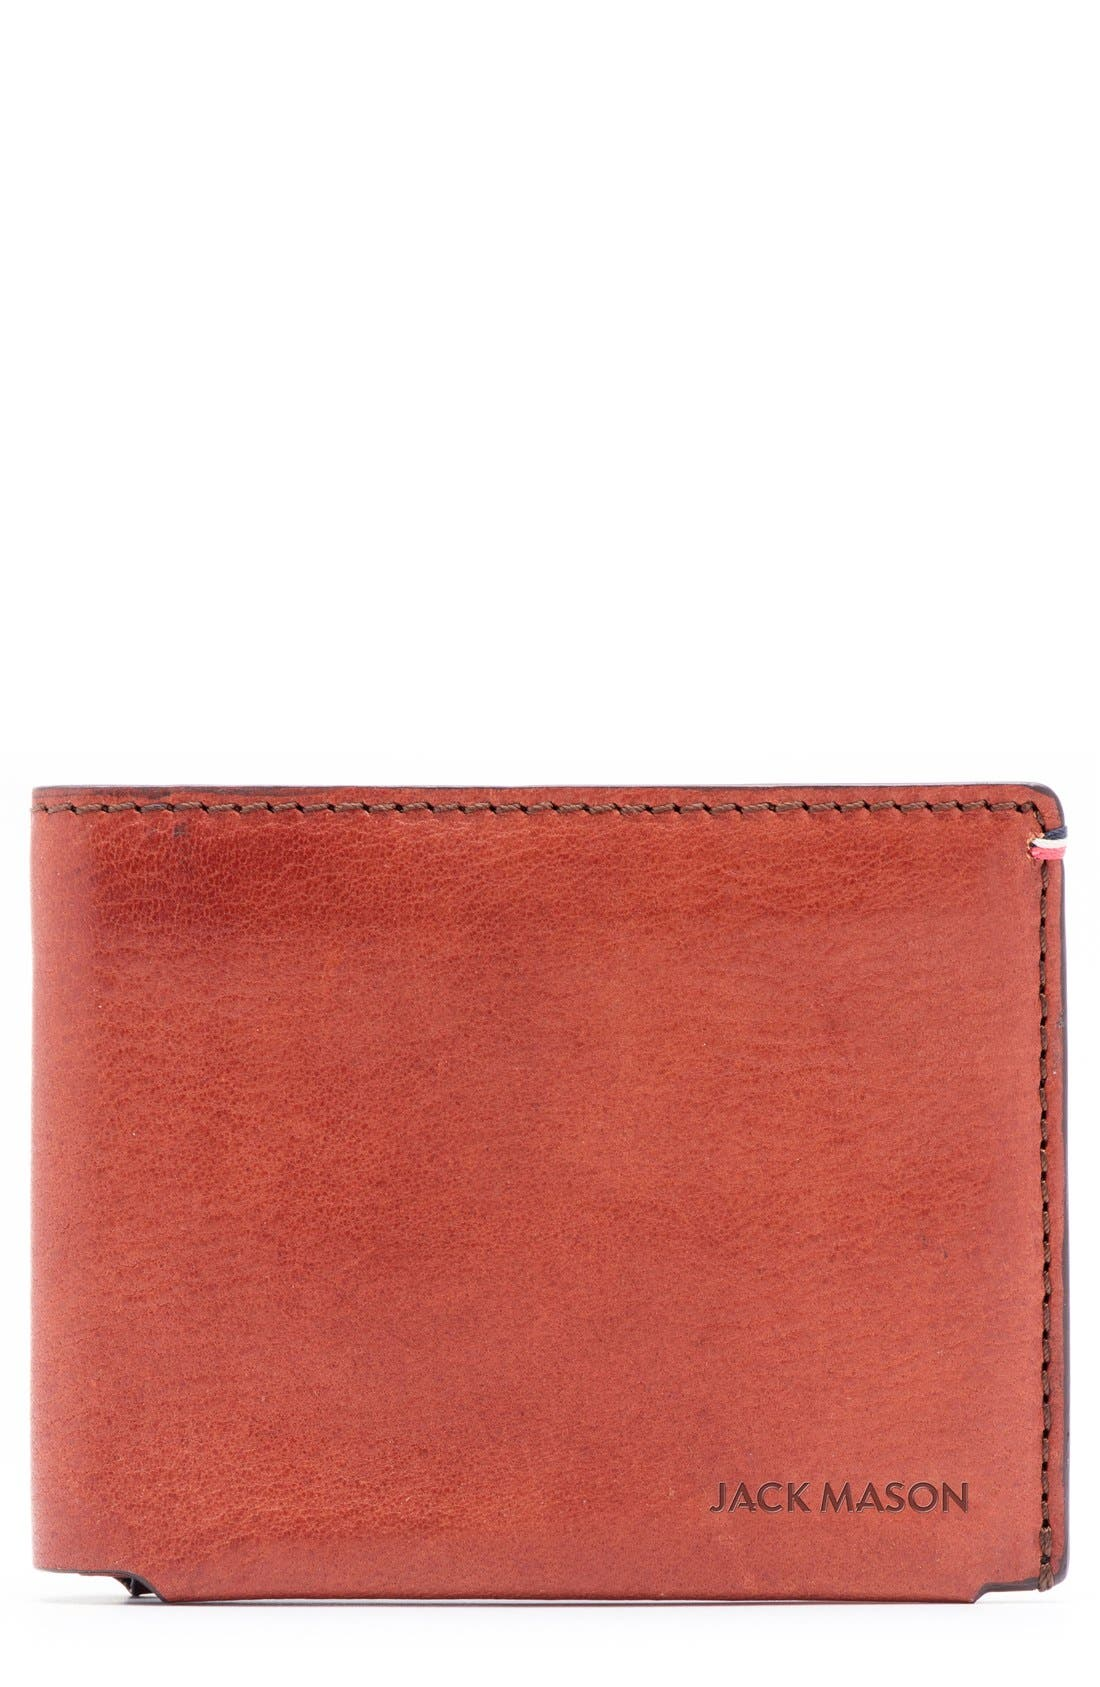 Pebbled Leather Wallet,                         Main,                         color, 800